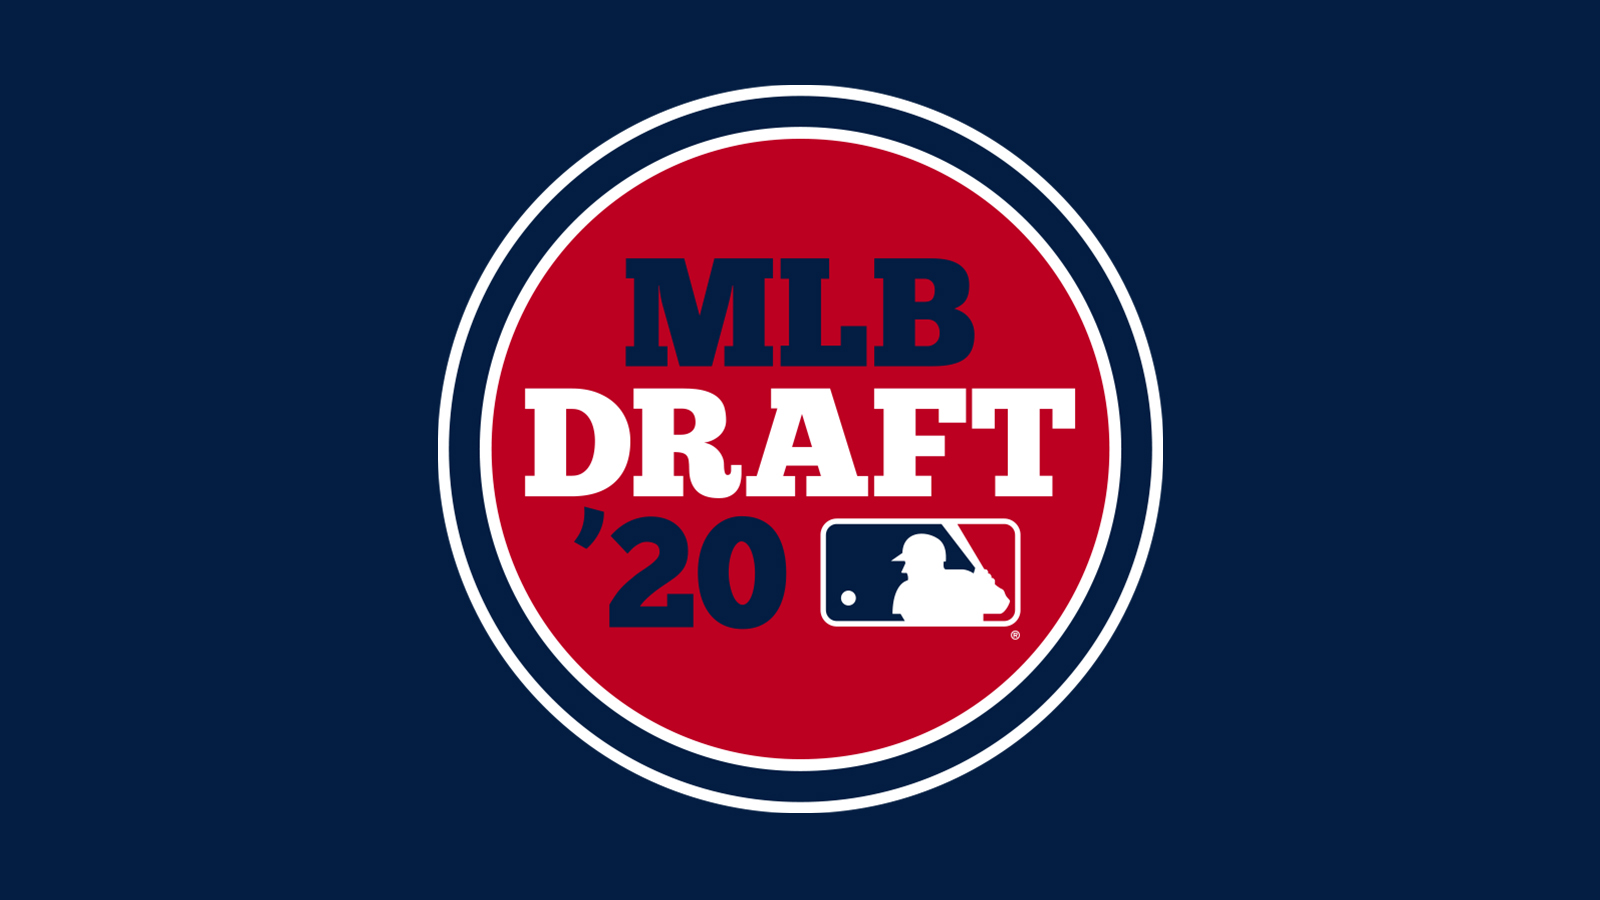 MLB Draft order 2020: Updated list of picks for all 5 rounds & competitive balance selections